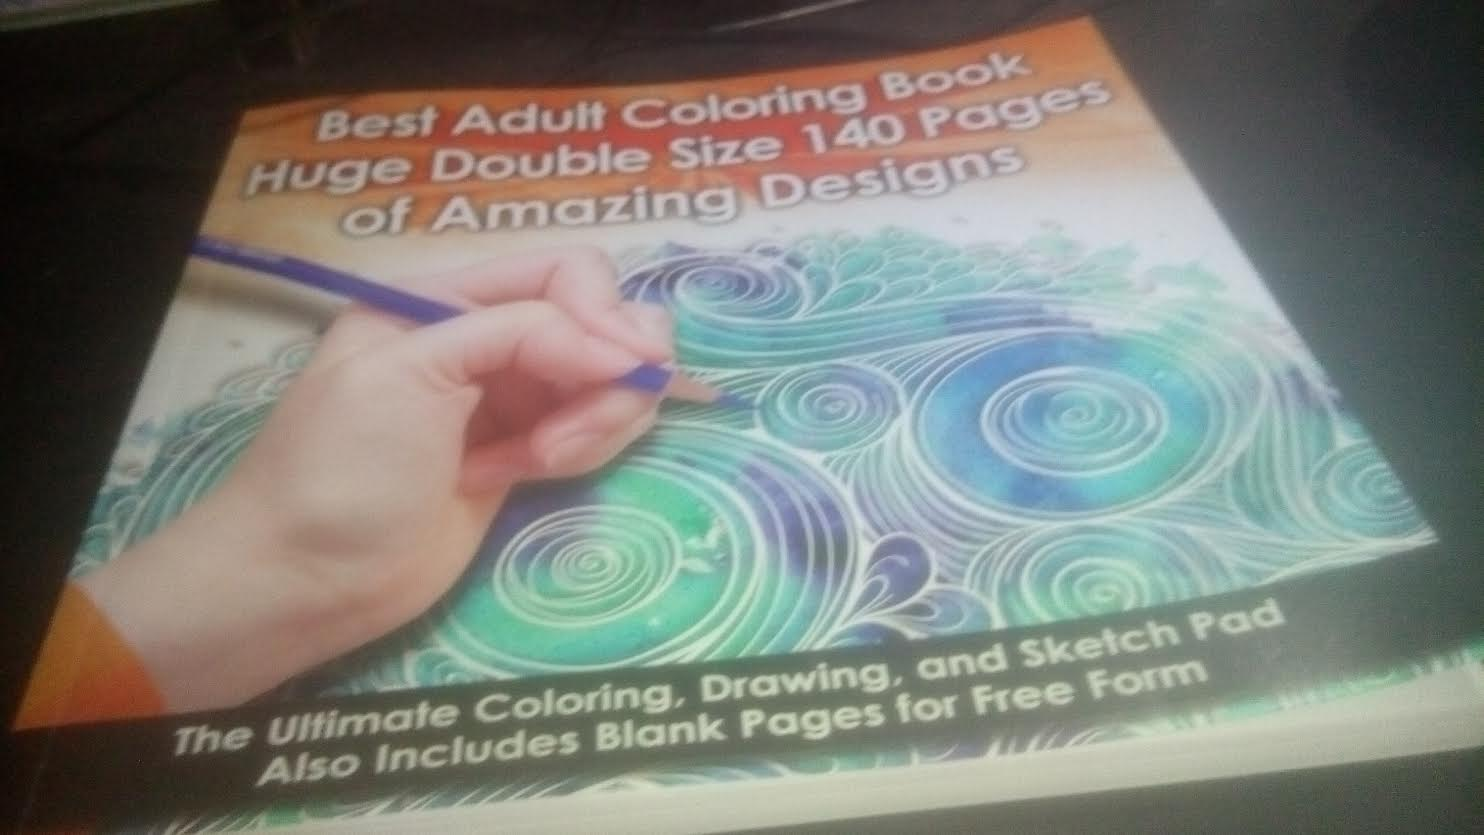 - Amazing Designs Best Adult Coloring Book 140 Pages Double Size